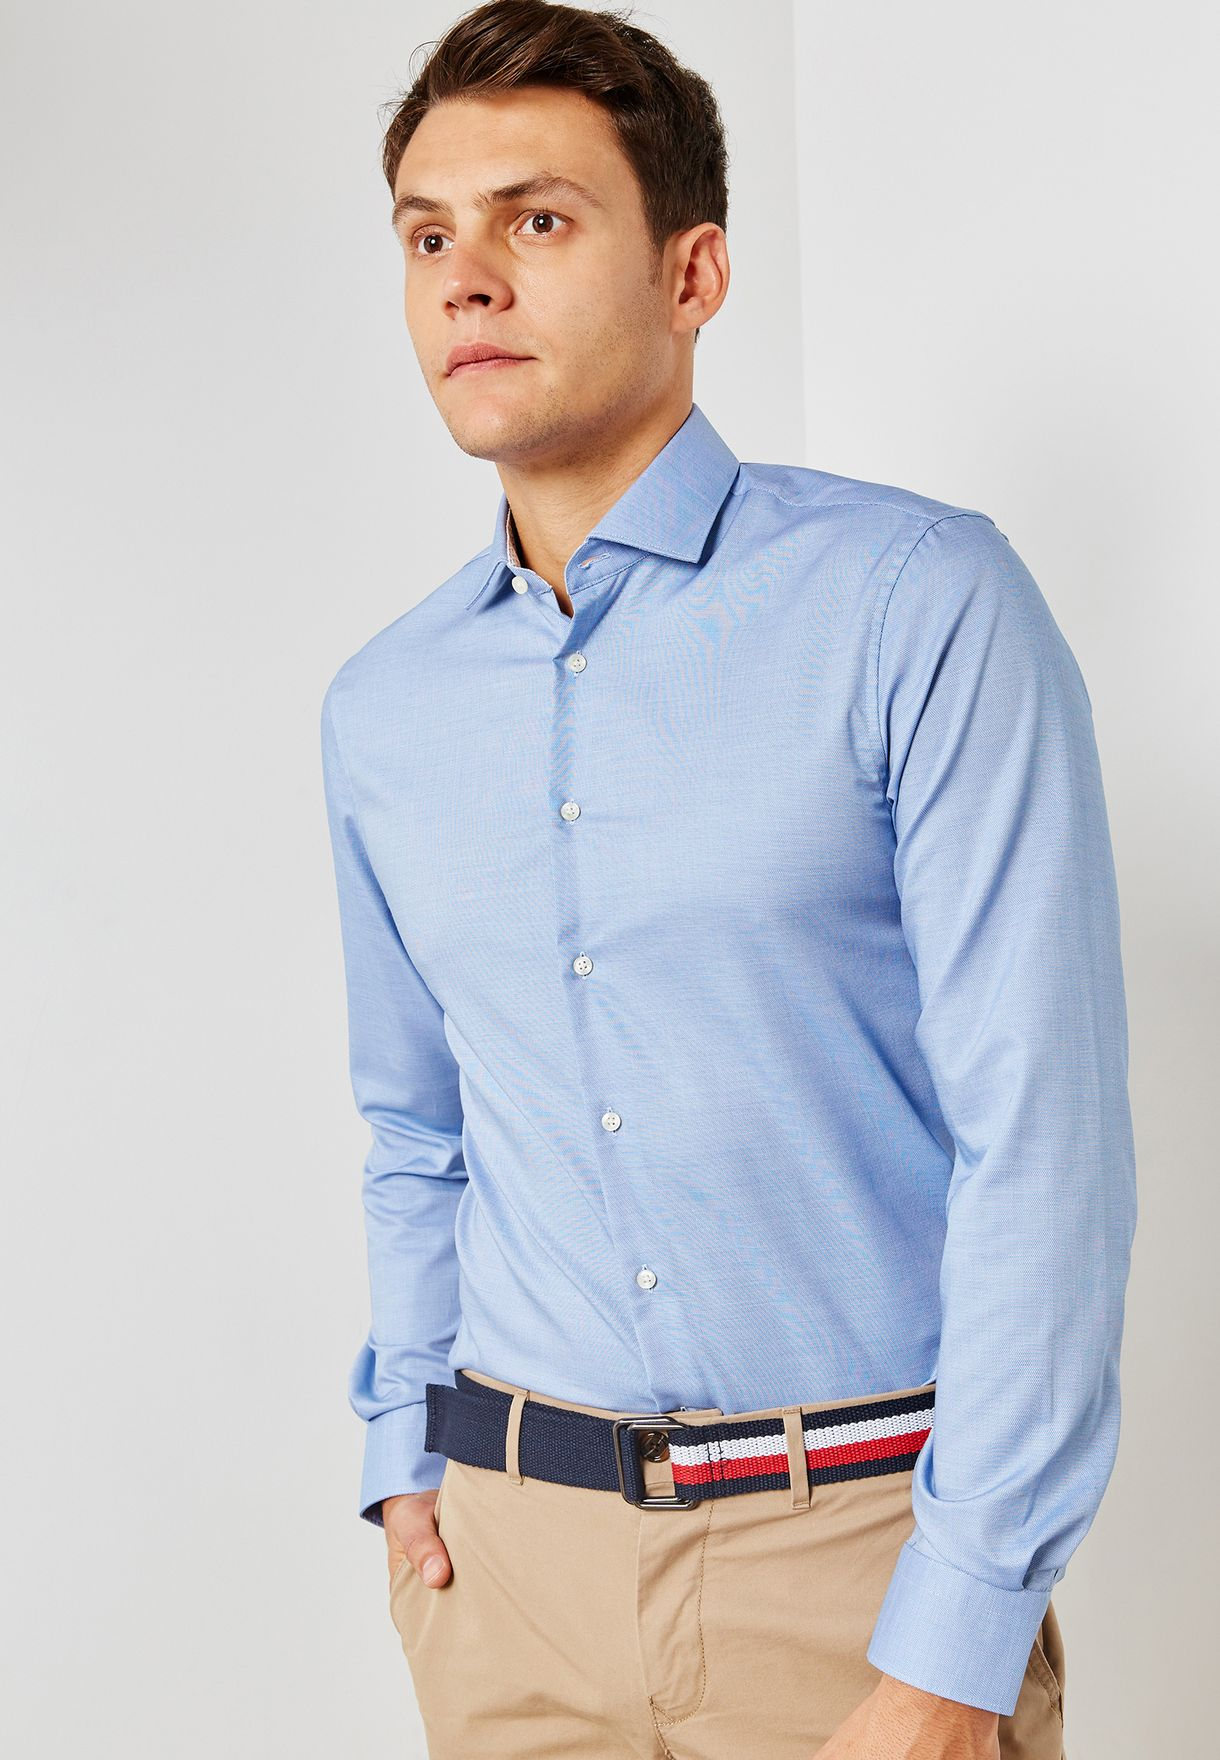 5b93e92ae4d7 Shop Tommy Hilfiger blue Tommy Hilfiger Slim Fit Shirt TT0TT03405 for Men  in UAE - TO279AT58TUF